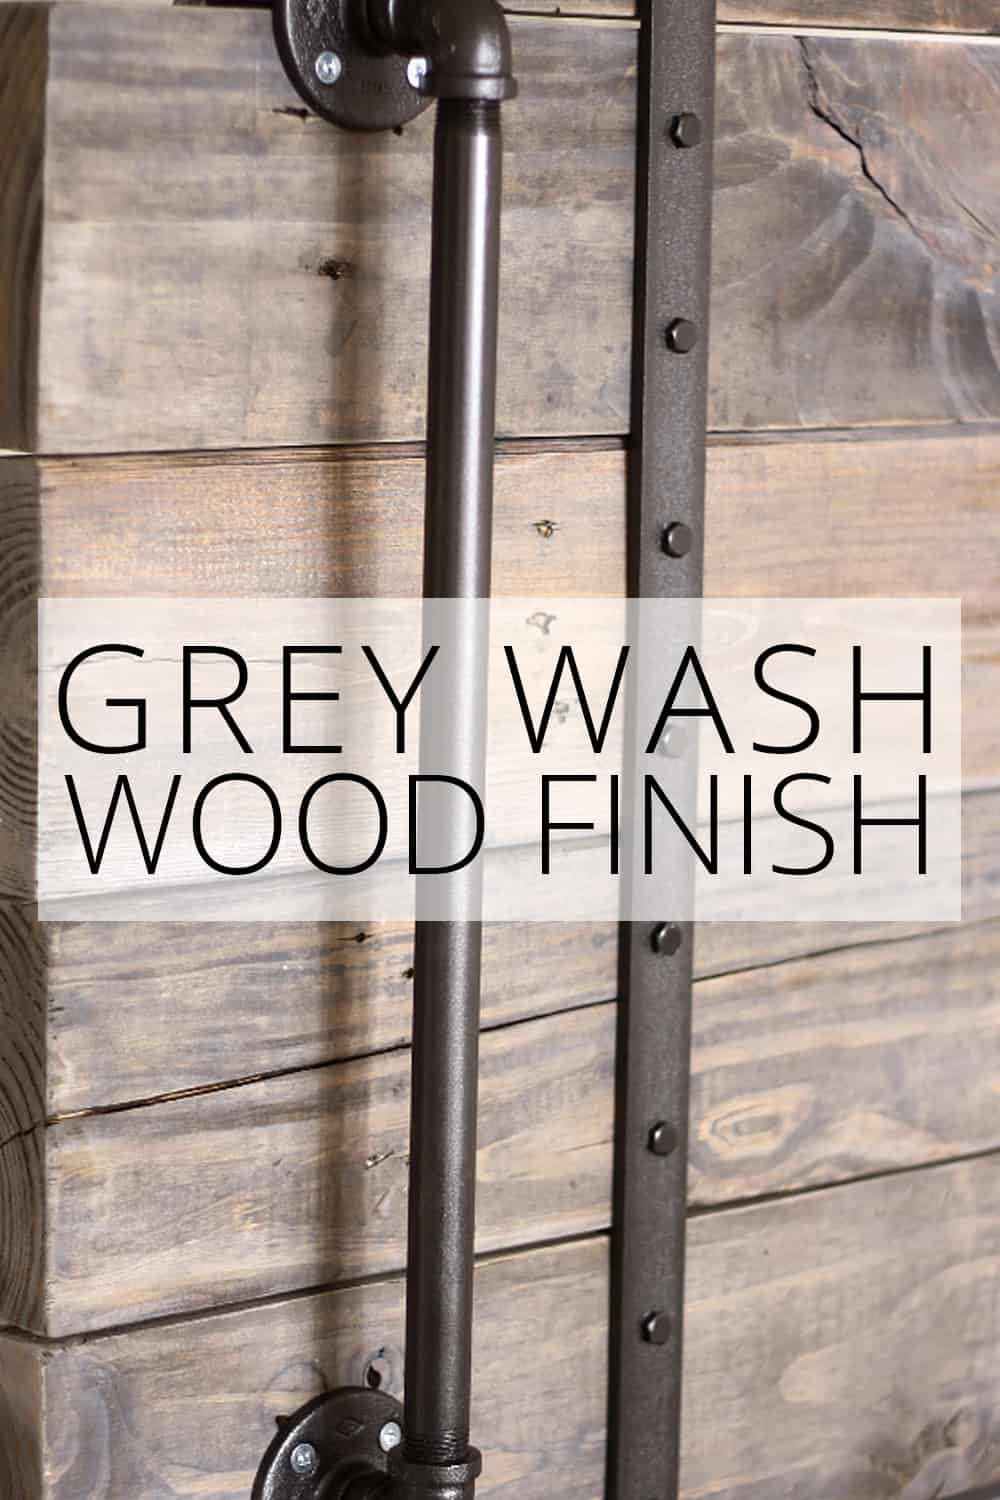 Grey Wash Wood Finish How to Get the Grey Distressed  : grey wash wood finish from akadesign.ca size 1000 x 1500 jpeg 819kB